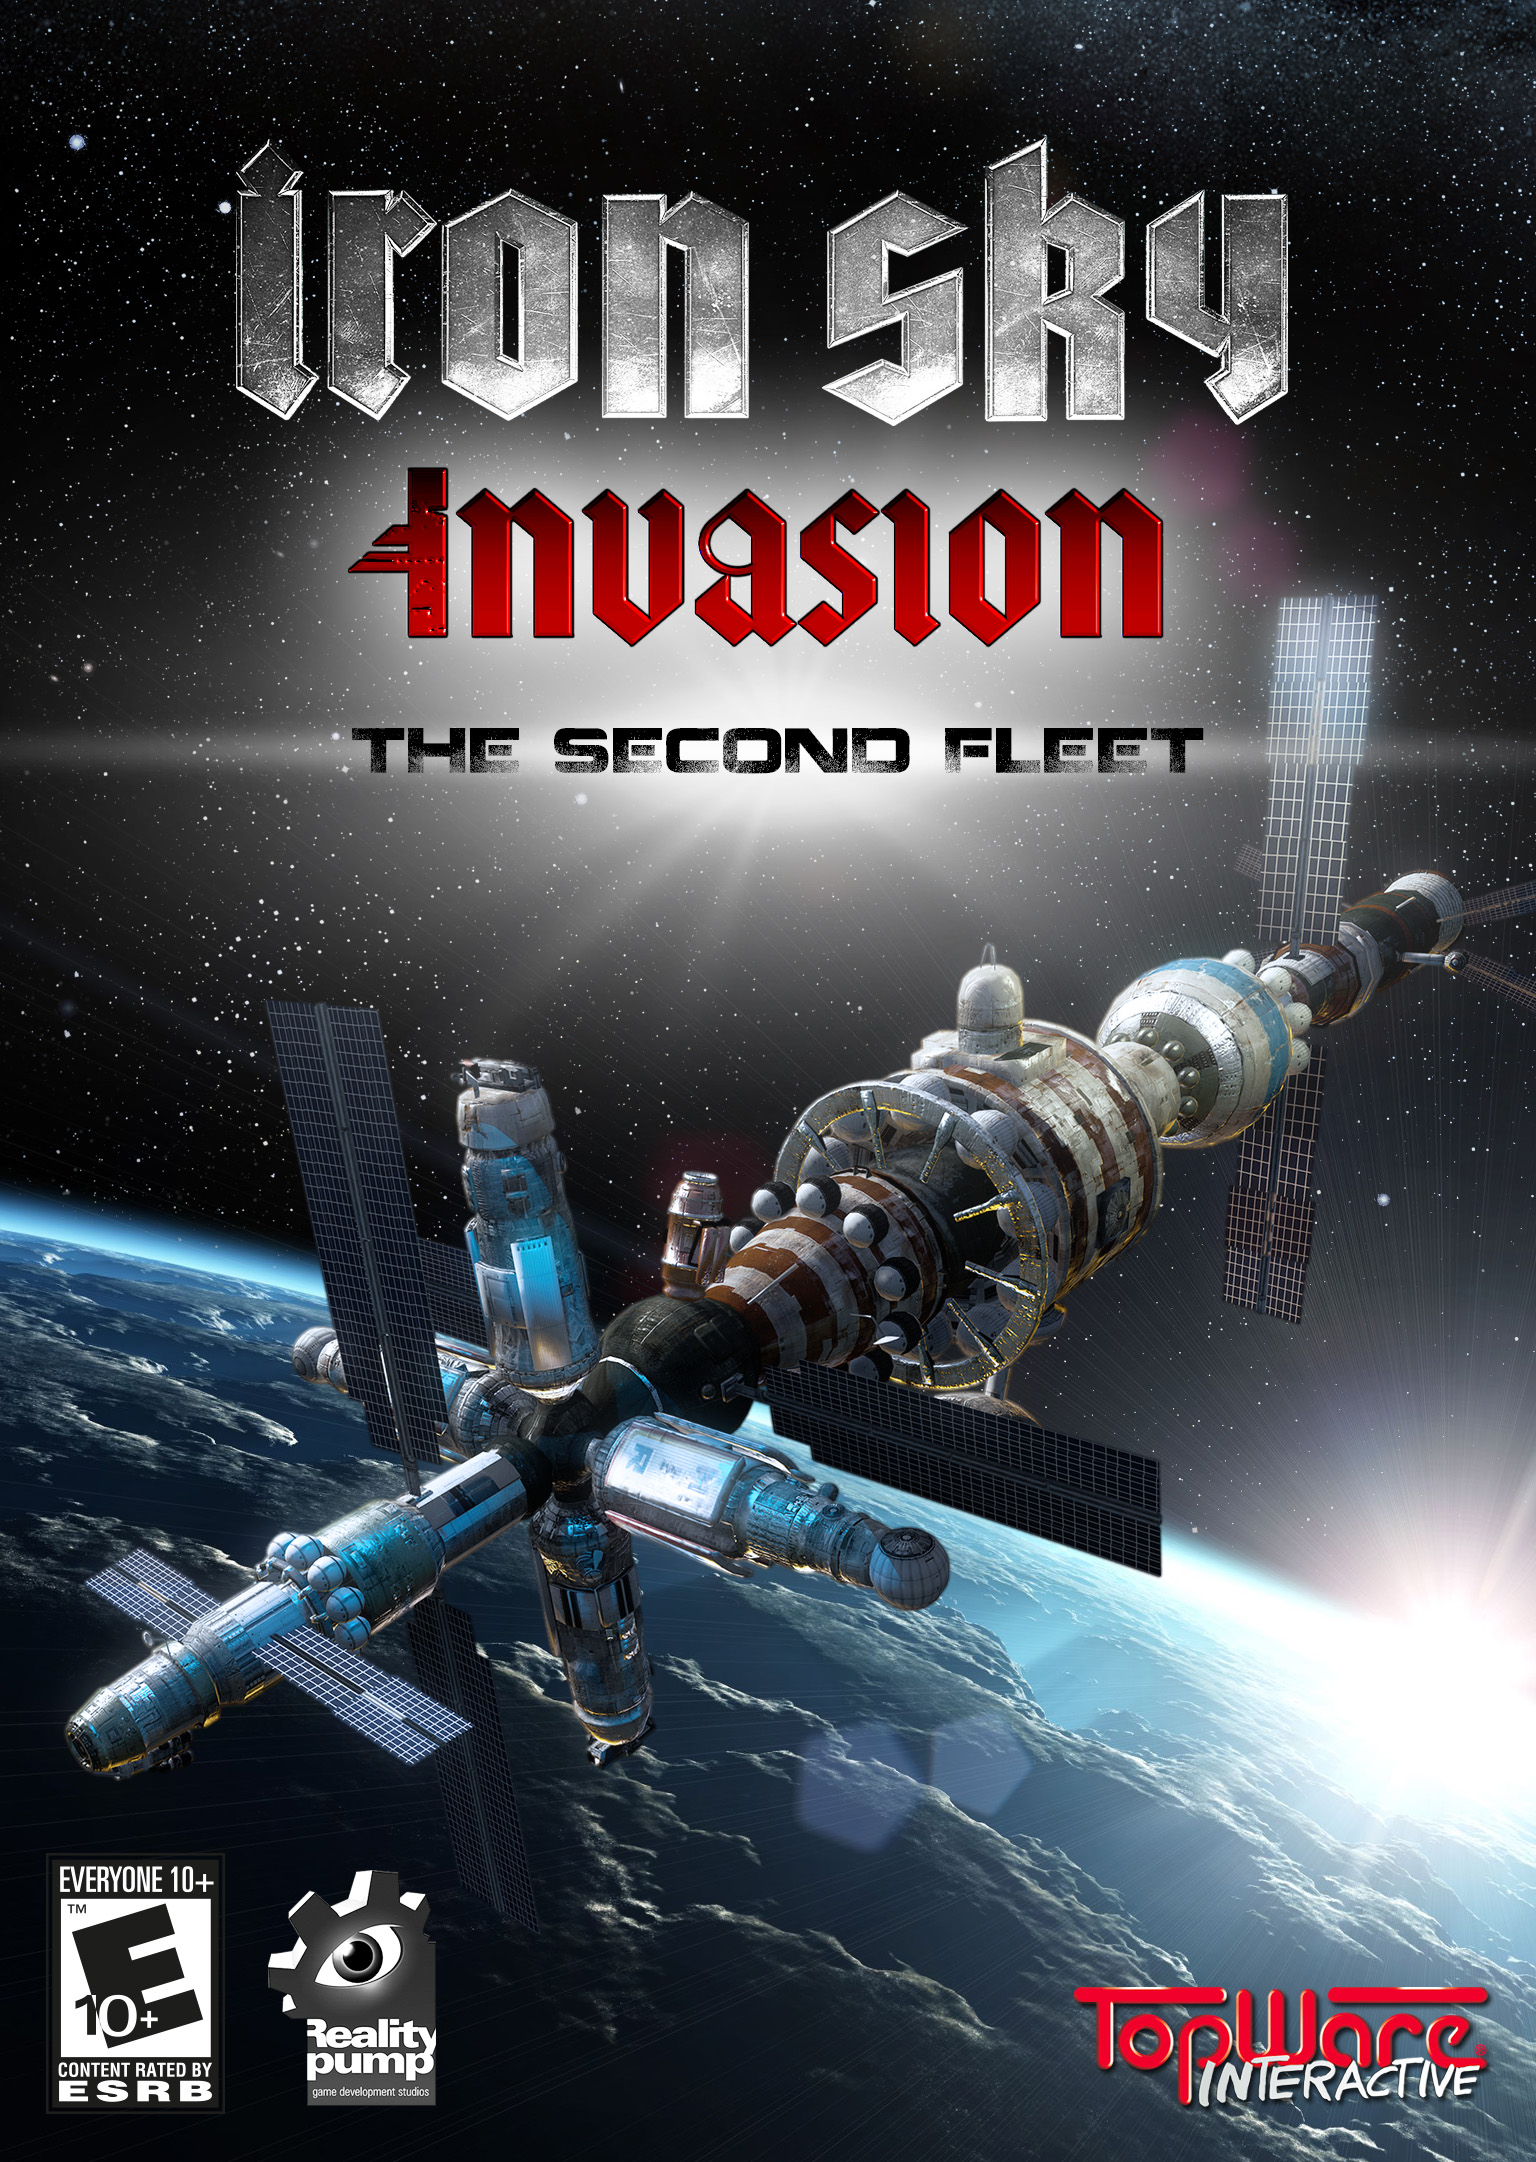 Iron Sky Invasion - The Second Fleet DLC [Steam]